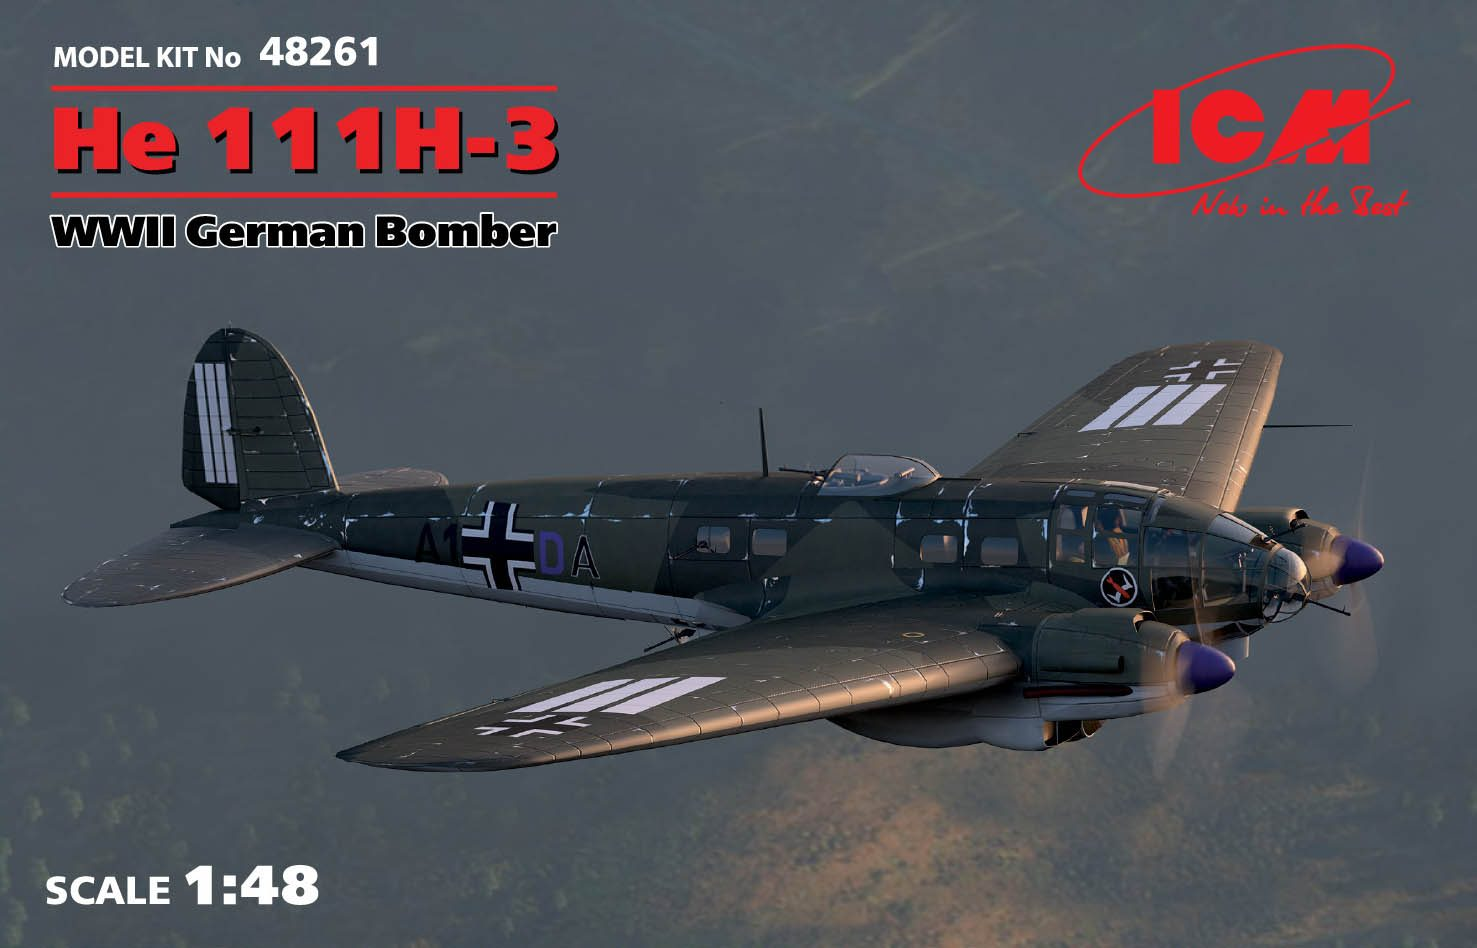 ICM 1/48 He 111H-3, WWII German Bomber